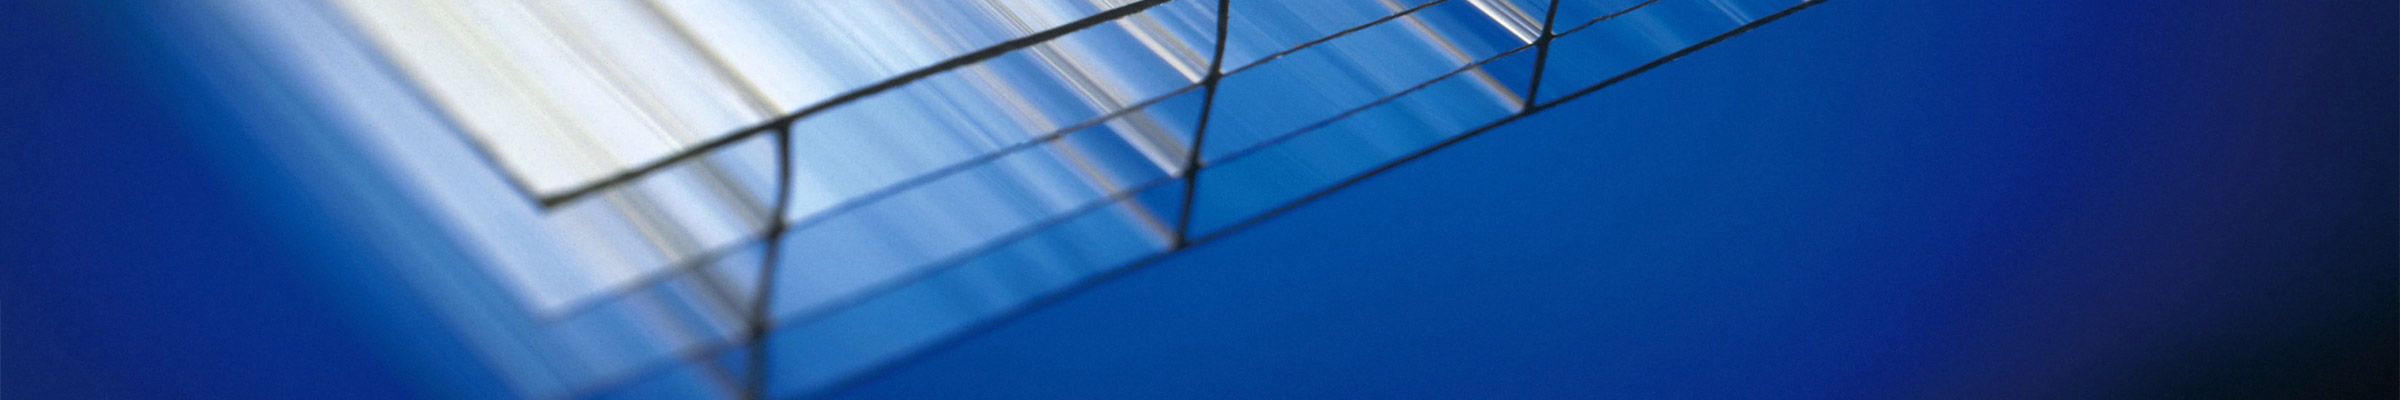 Edges of polycarbonate sheets